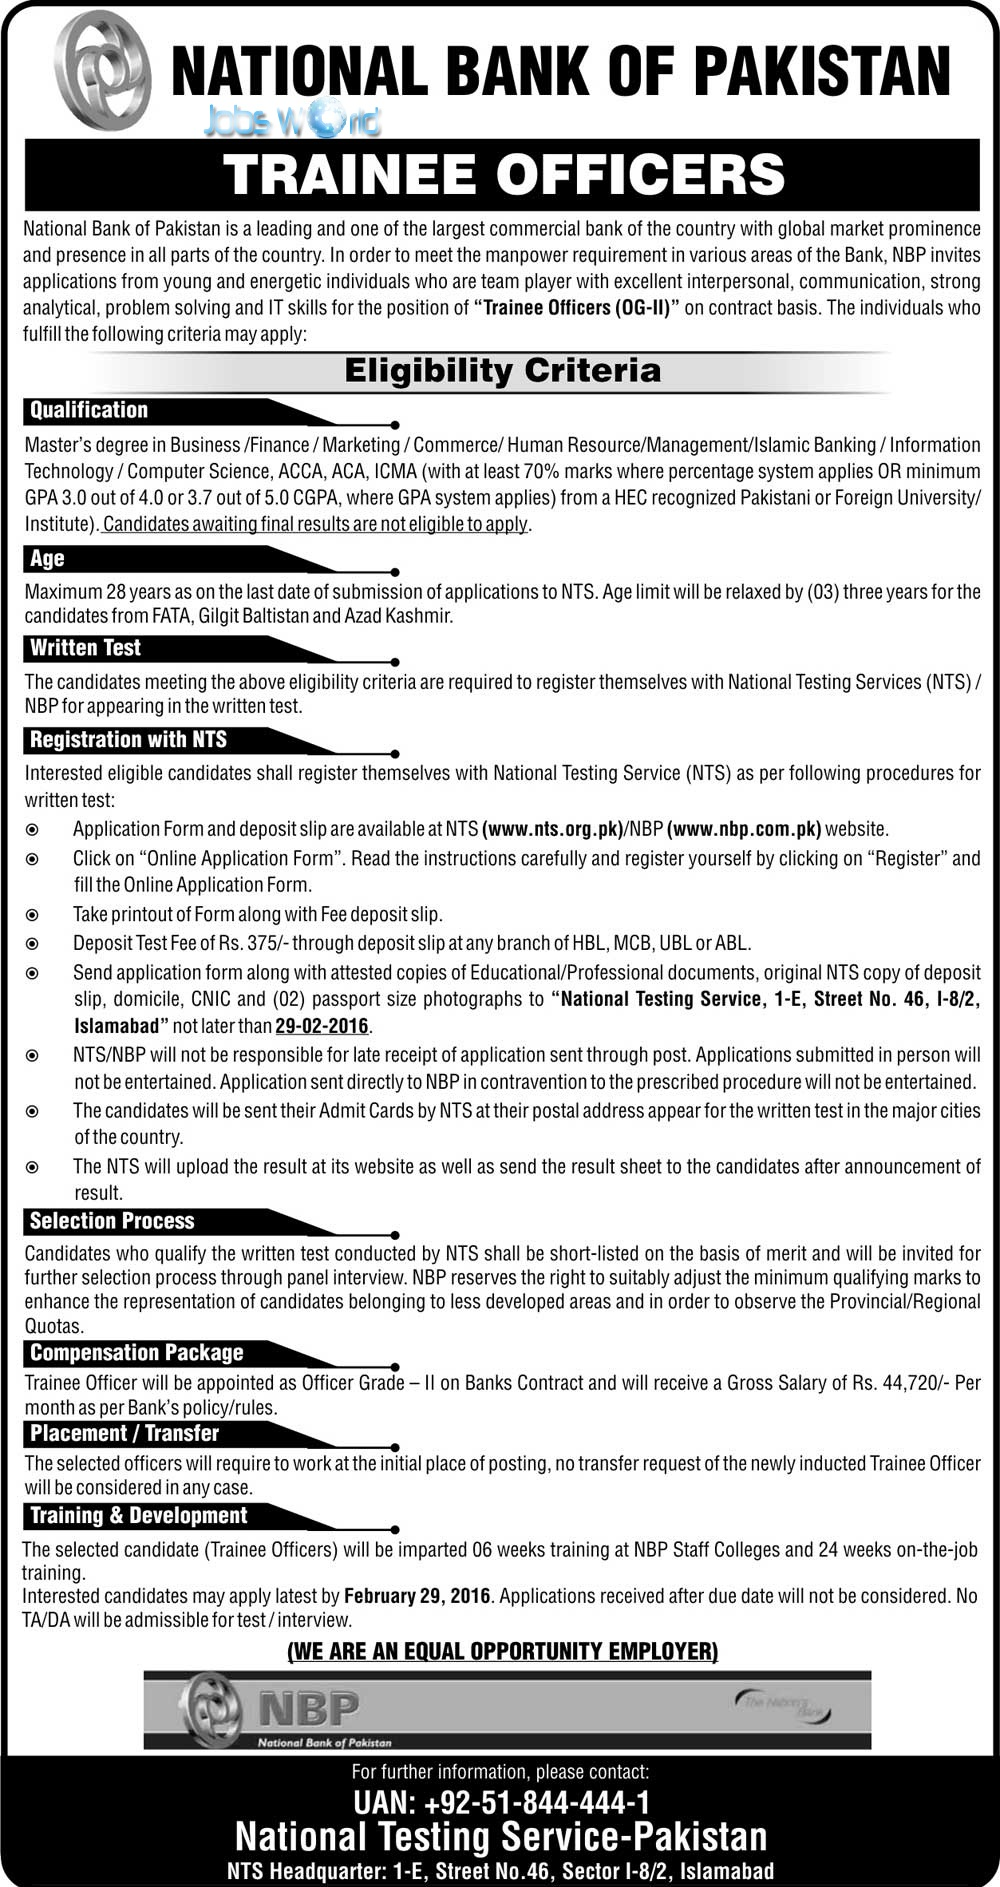 Jobs-in-National-Bank-of-stan-2016-NBP-Trainee-Officers Online Bank Job Application Form on taco bell, print out, olive garden, pizza hut, apply target,